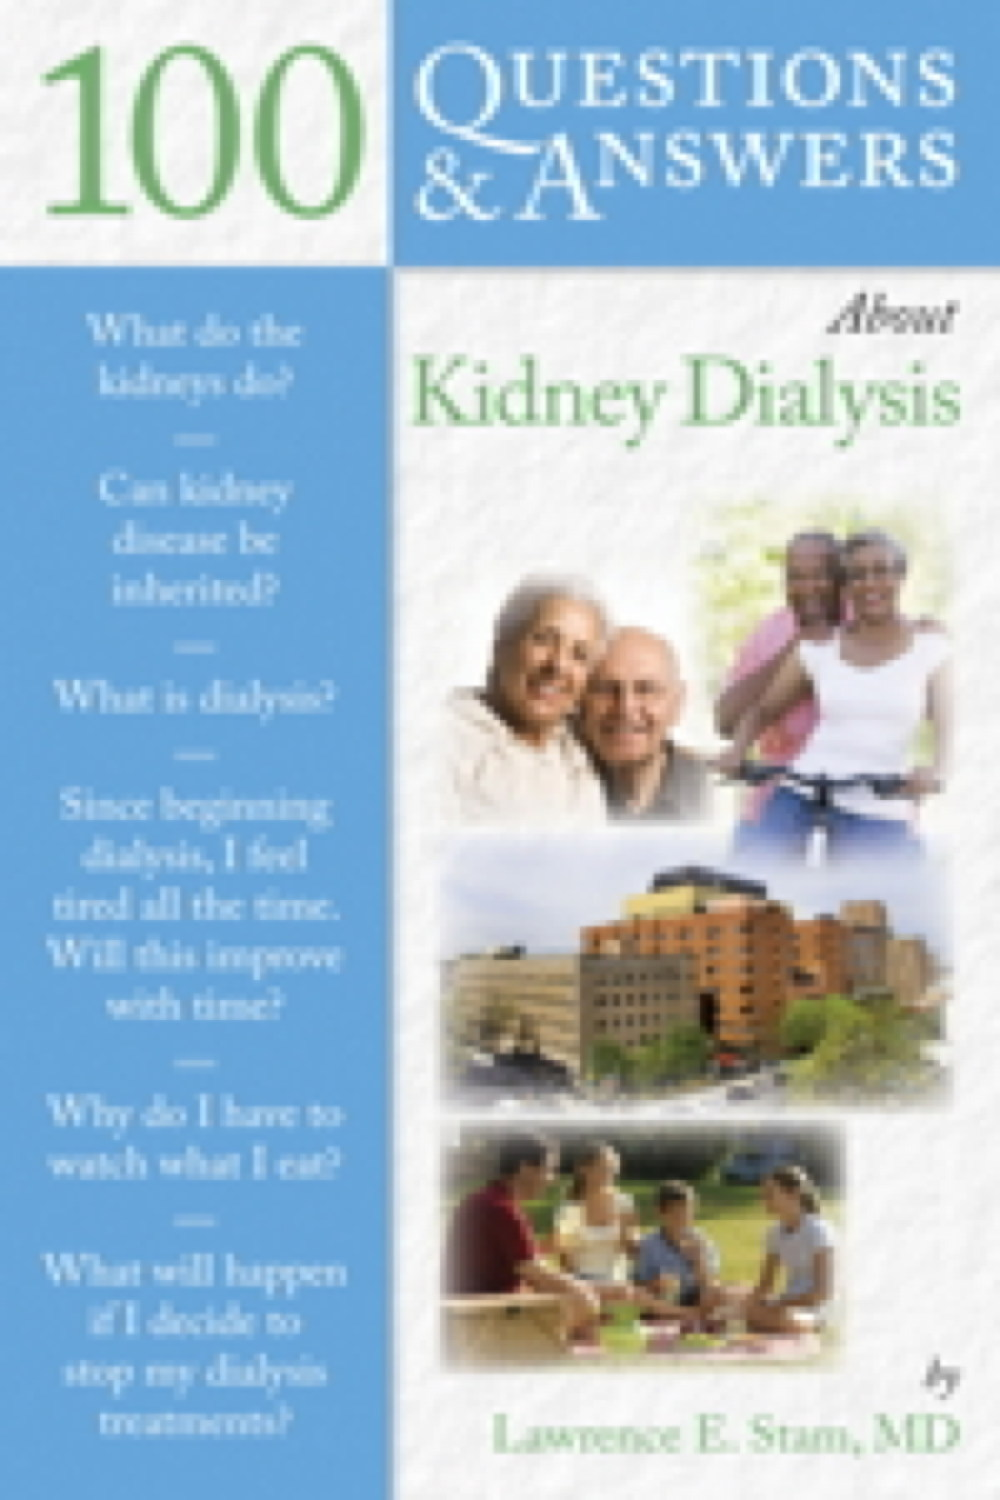 100 Questions  &  Answers About Kidney Dialysis - 9780763754174